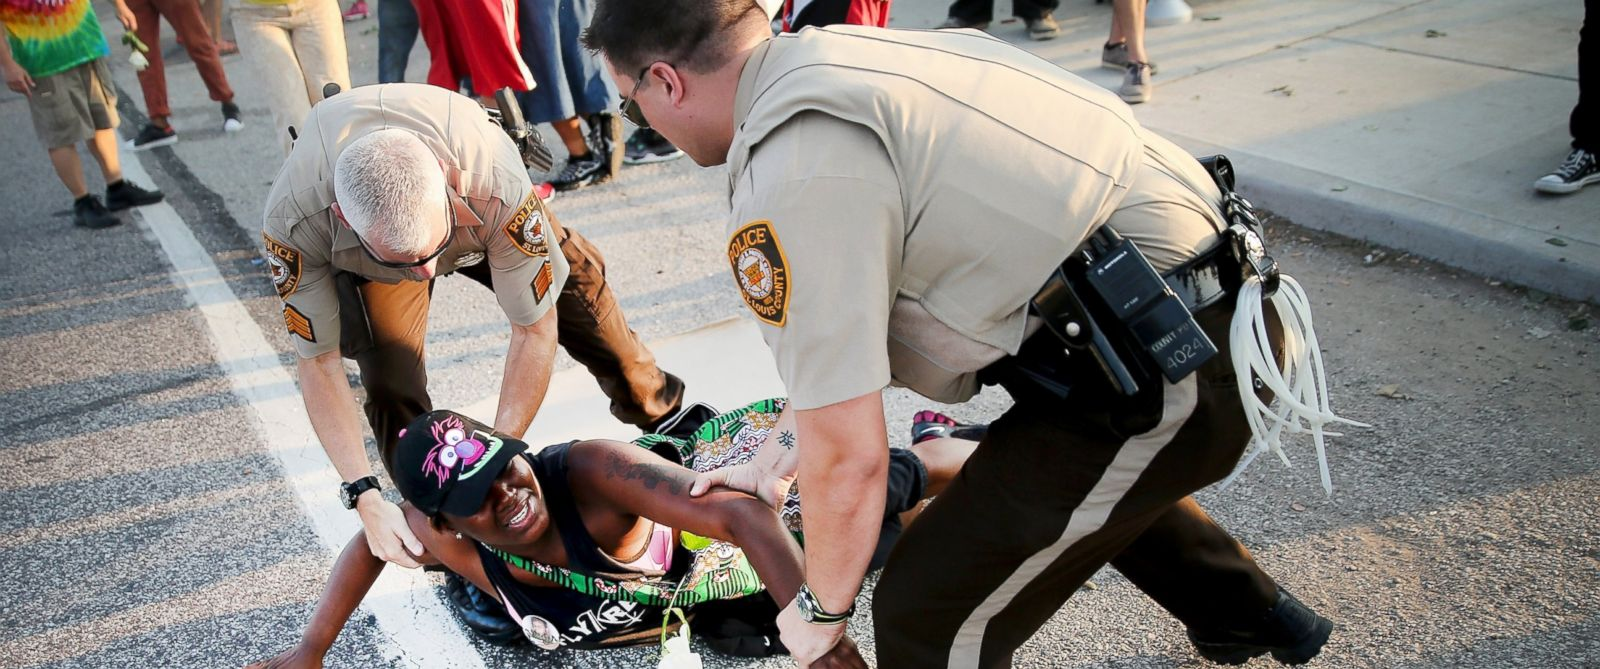 PHOTO: A demonstrator is arrested while protesting the killing of teenager Michael Brown, Aug. 19, 2014, in Ferguson, Mo.